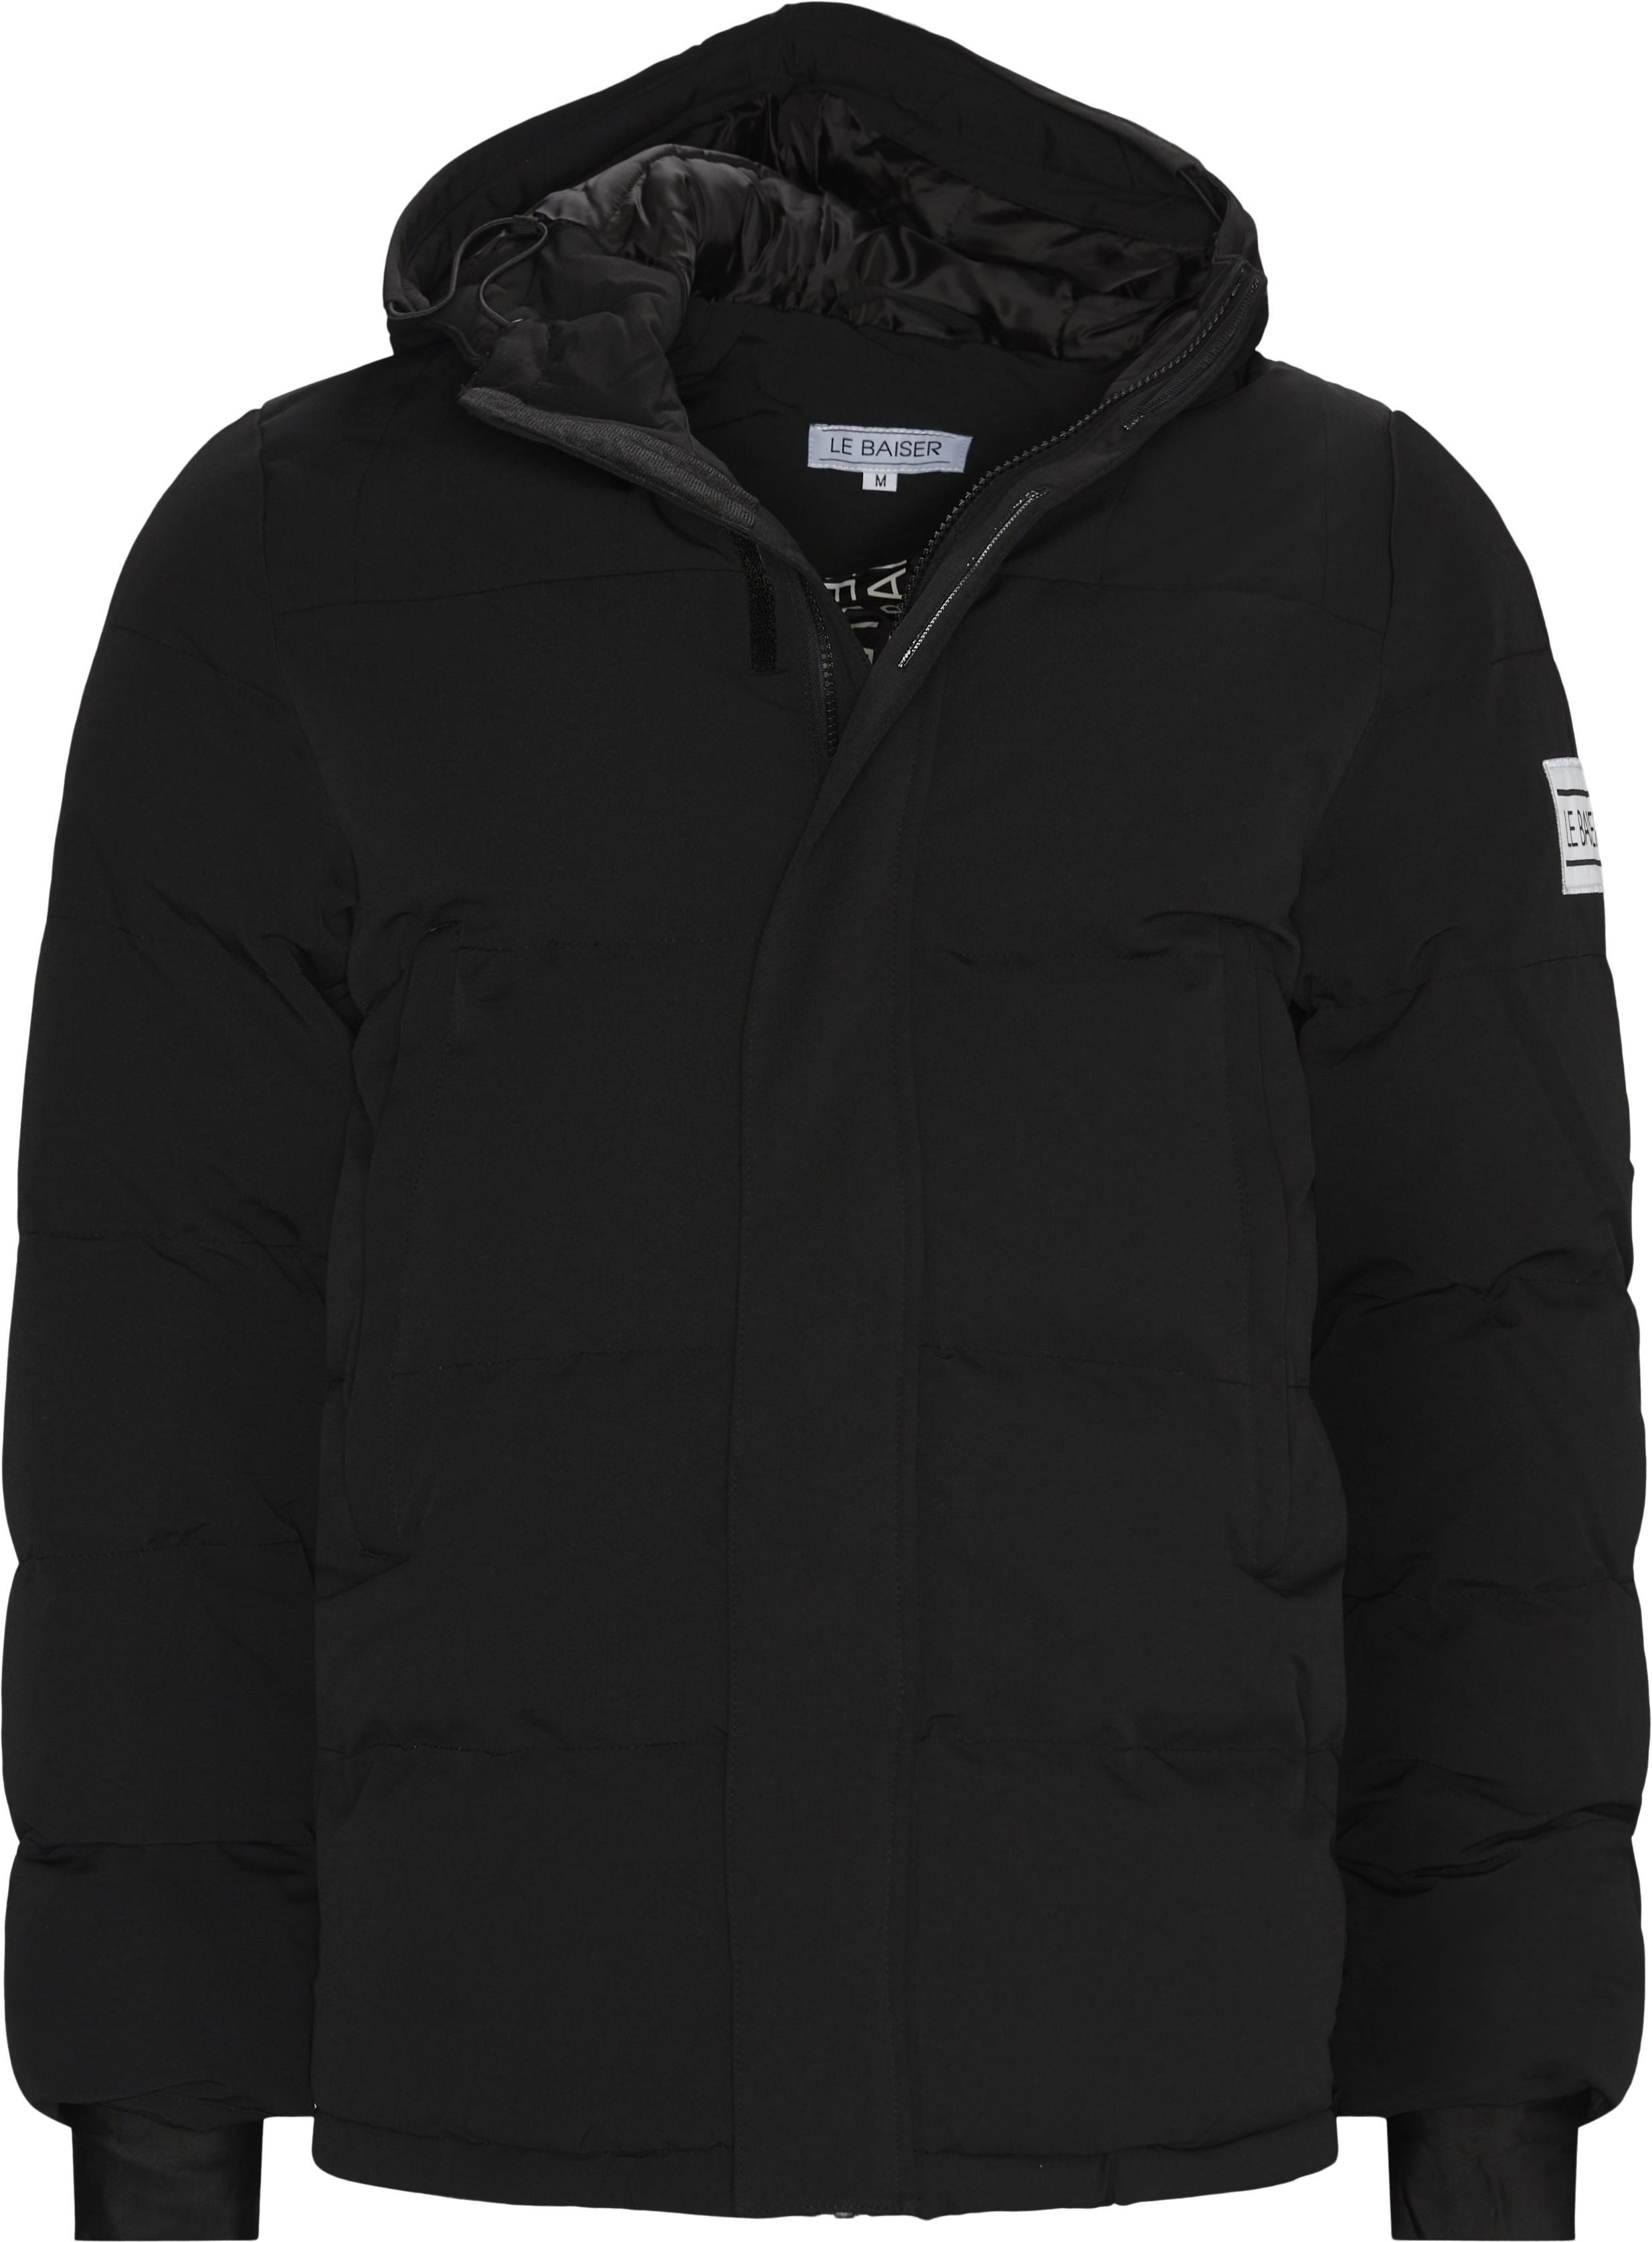 Michigan Jacket - Jackor - Regular - Svart